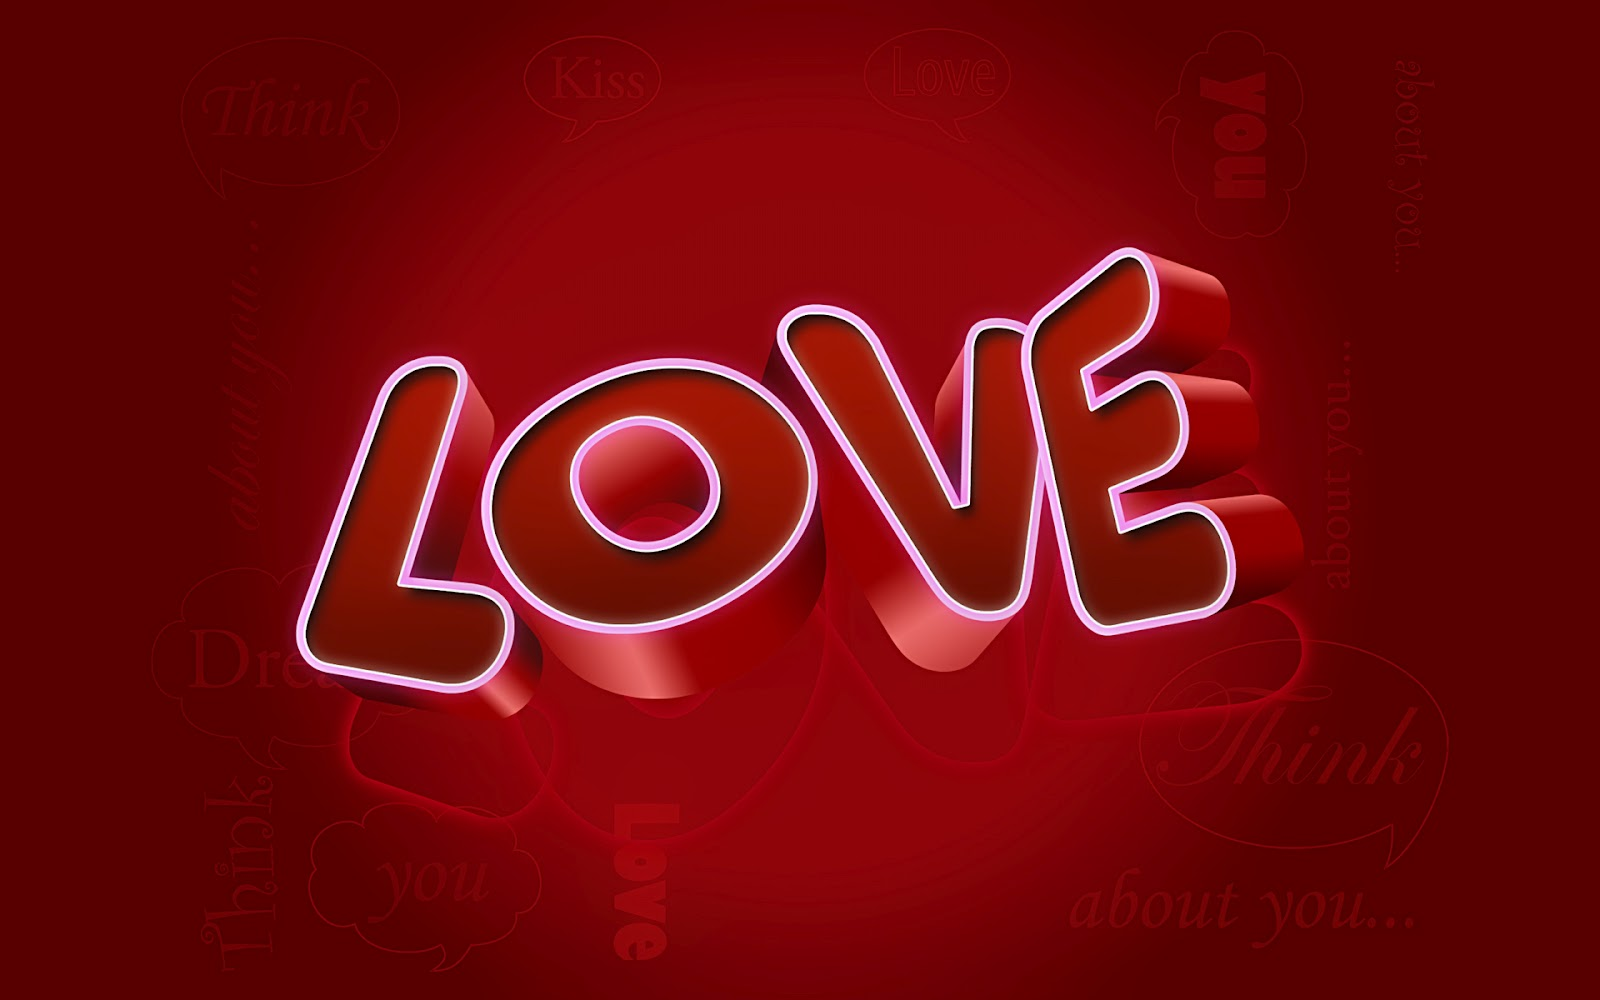 Love Wallpapers come : New Latest i love you wallpapers on this valentines day 2016